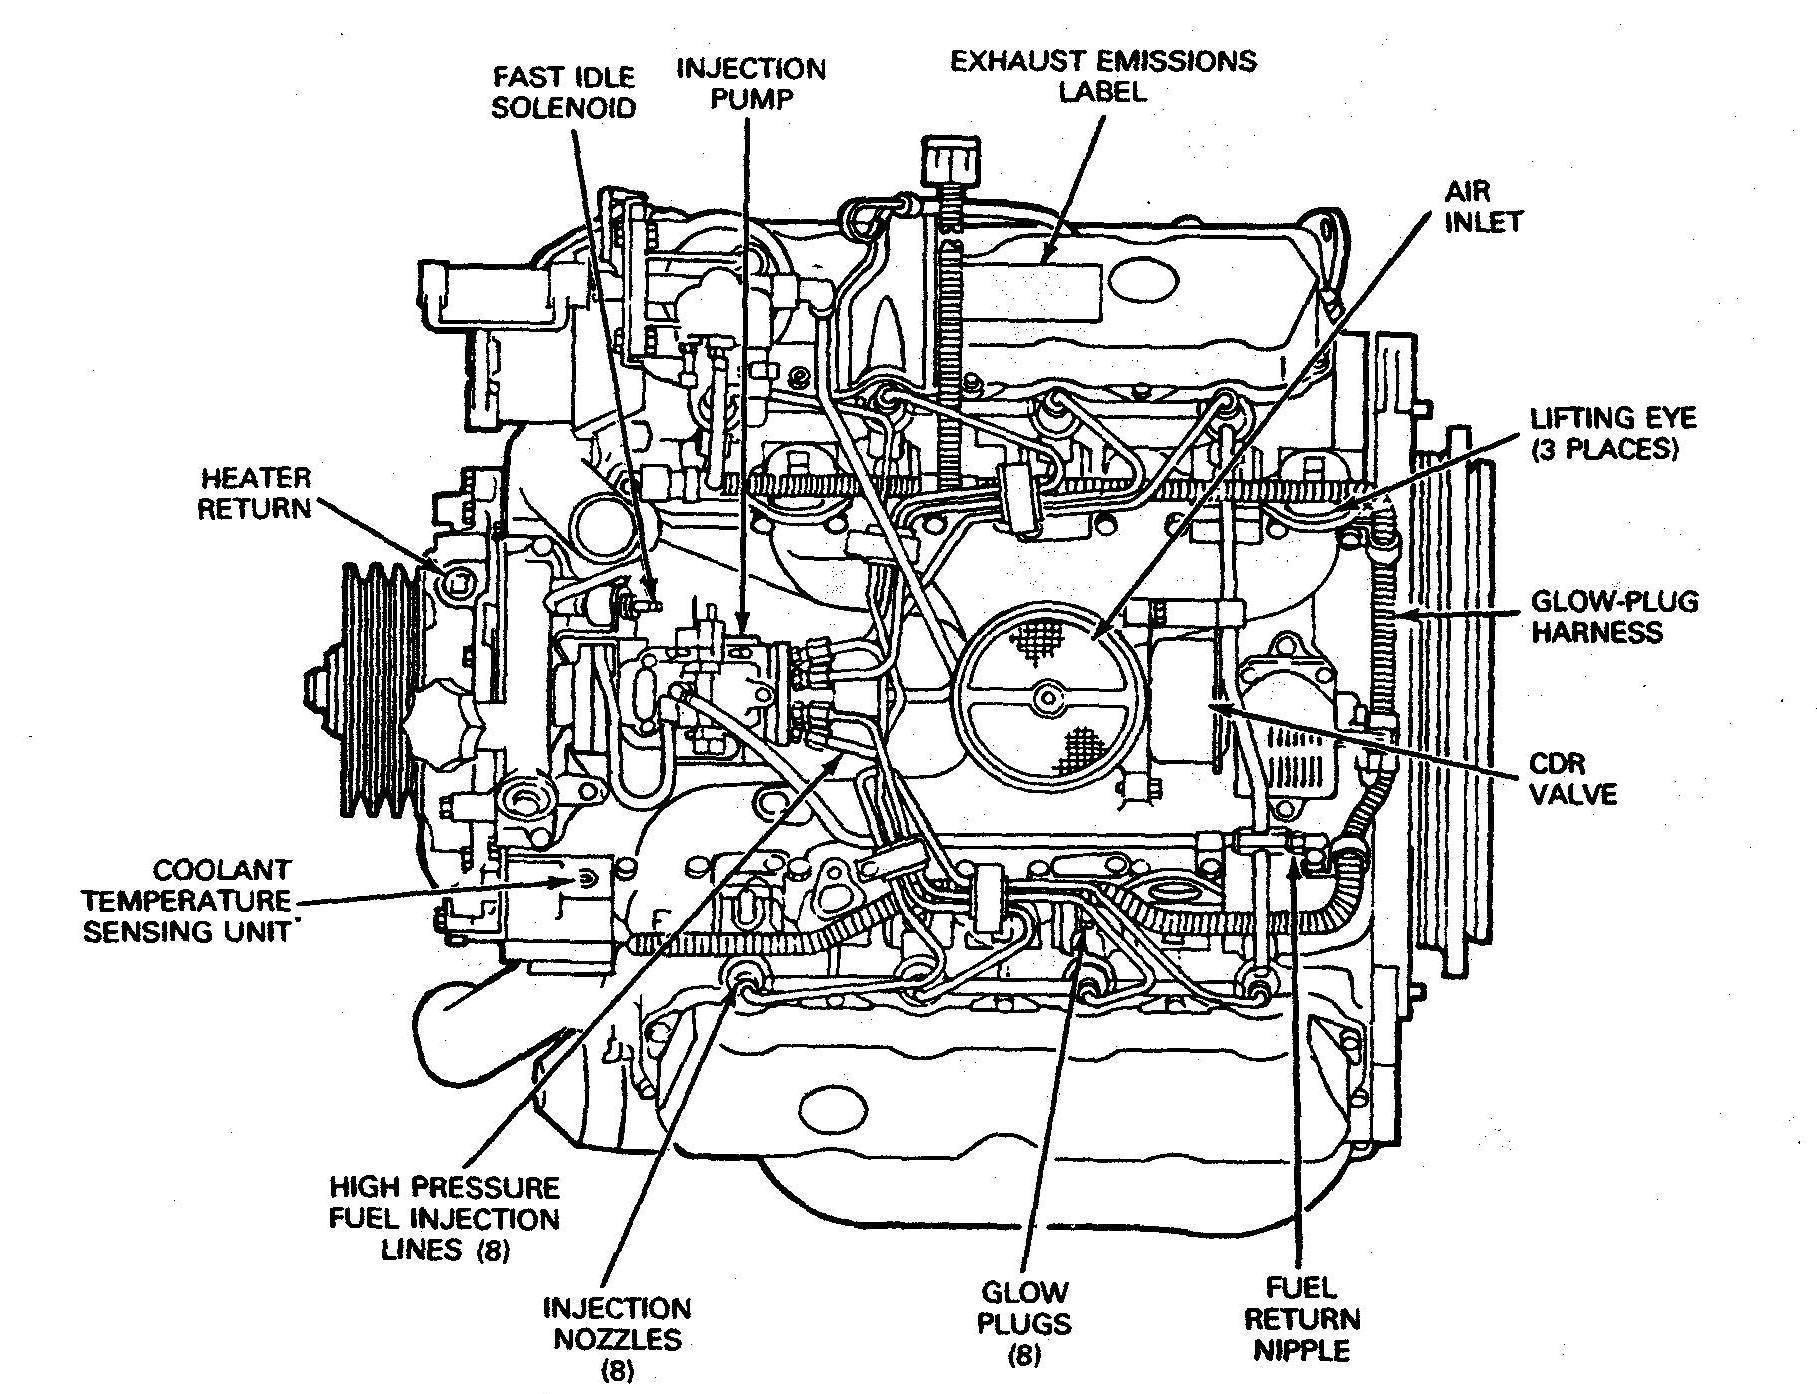 hight resolution of ford festiva on engine diagram 1989 ford 7 3l diesel